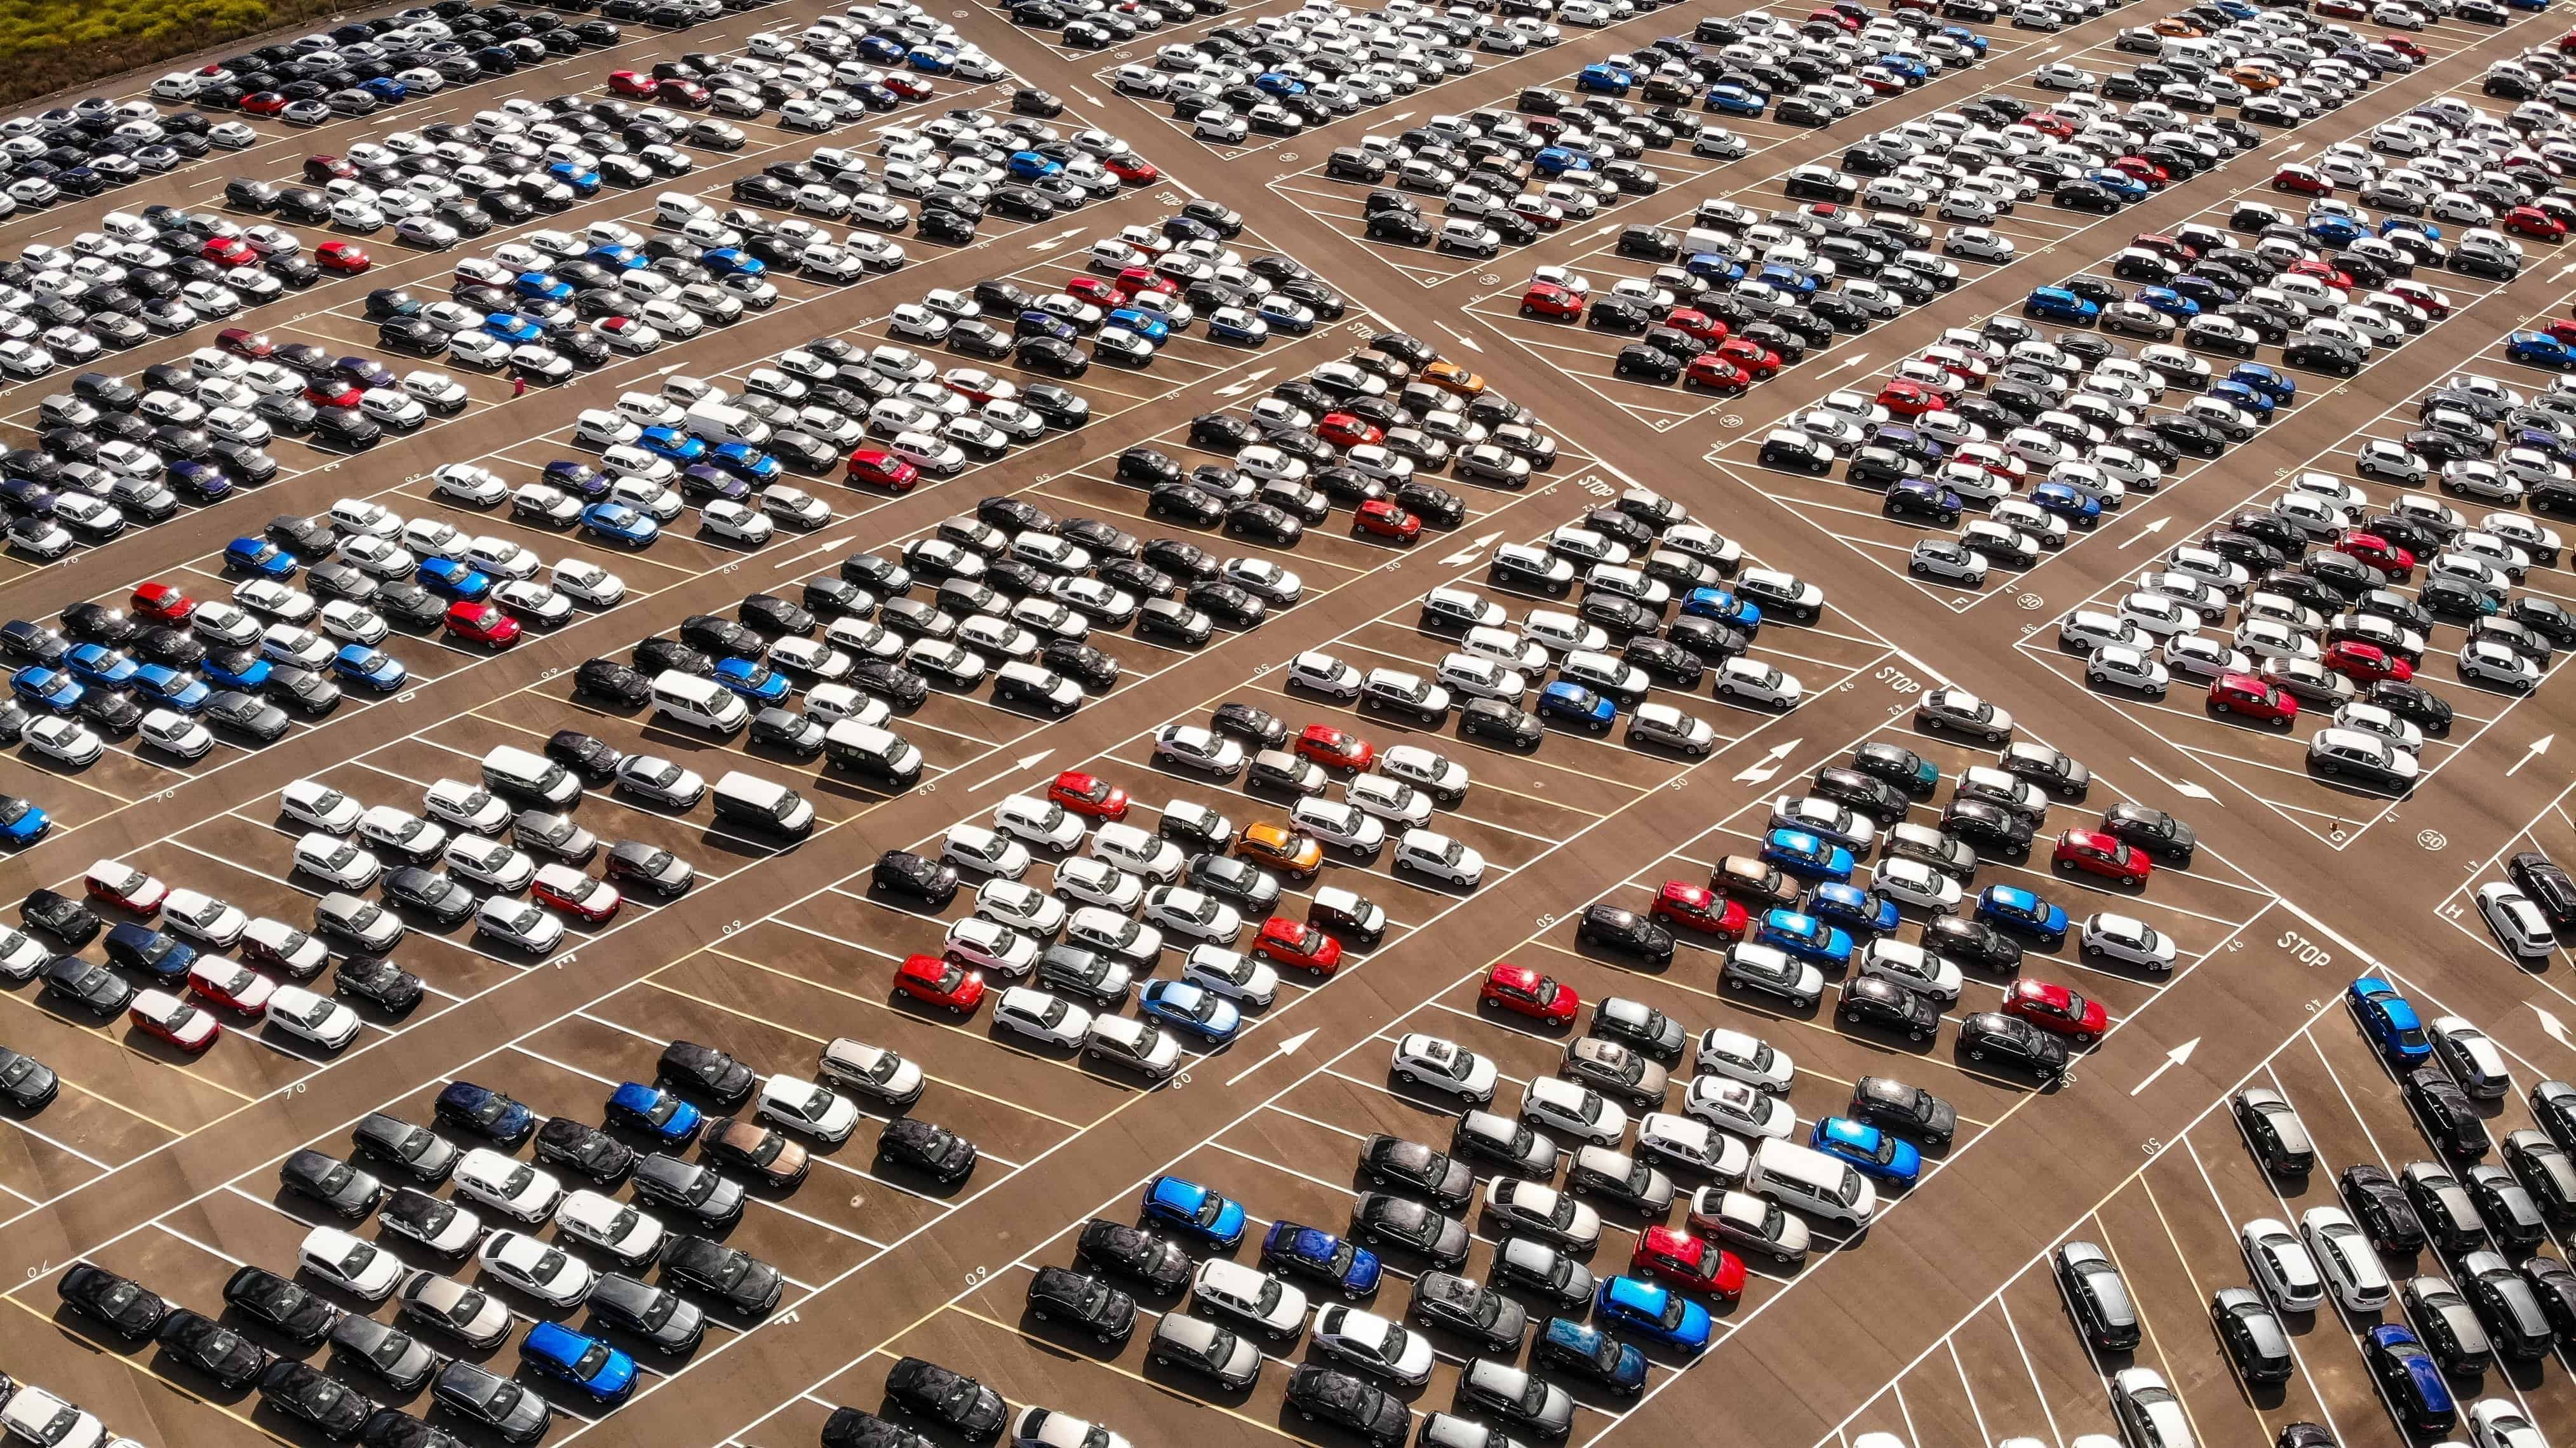 Parking lot with different colored cars